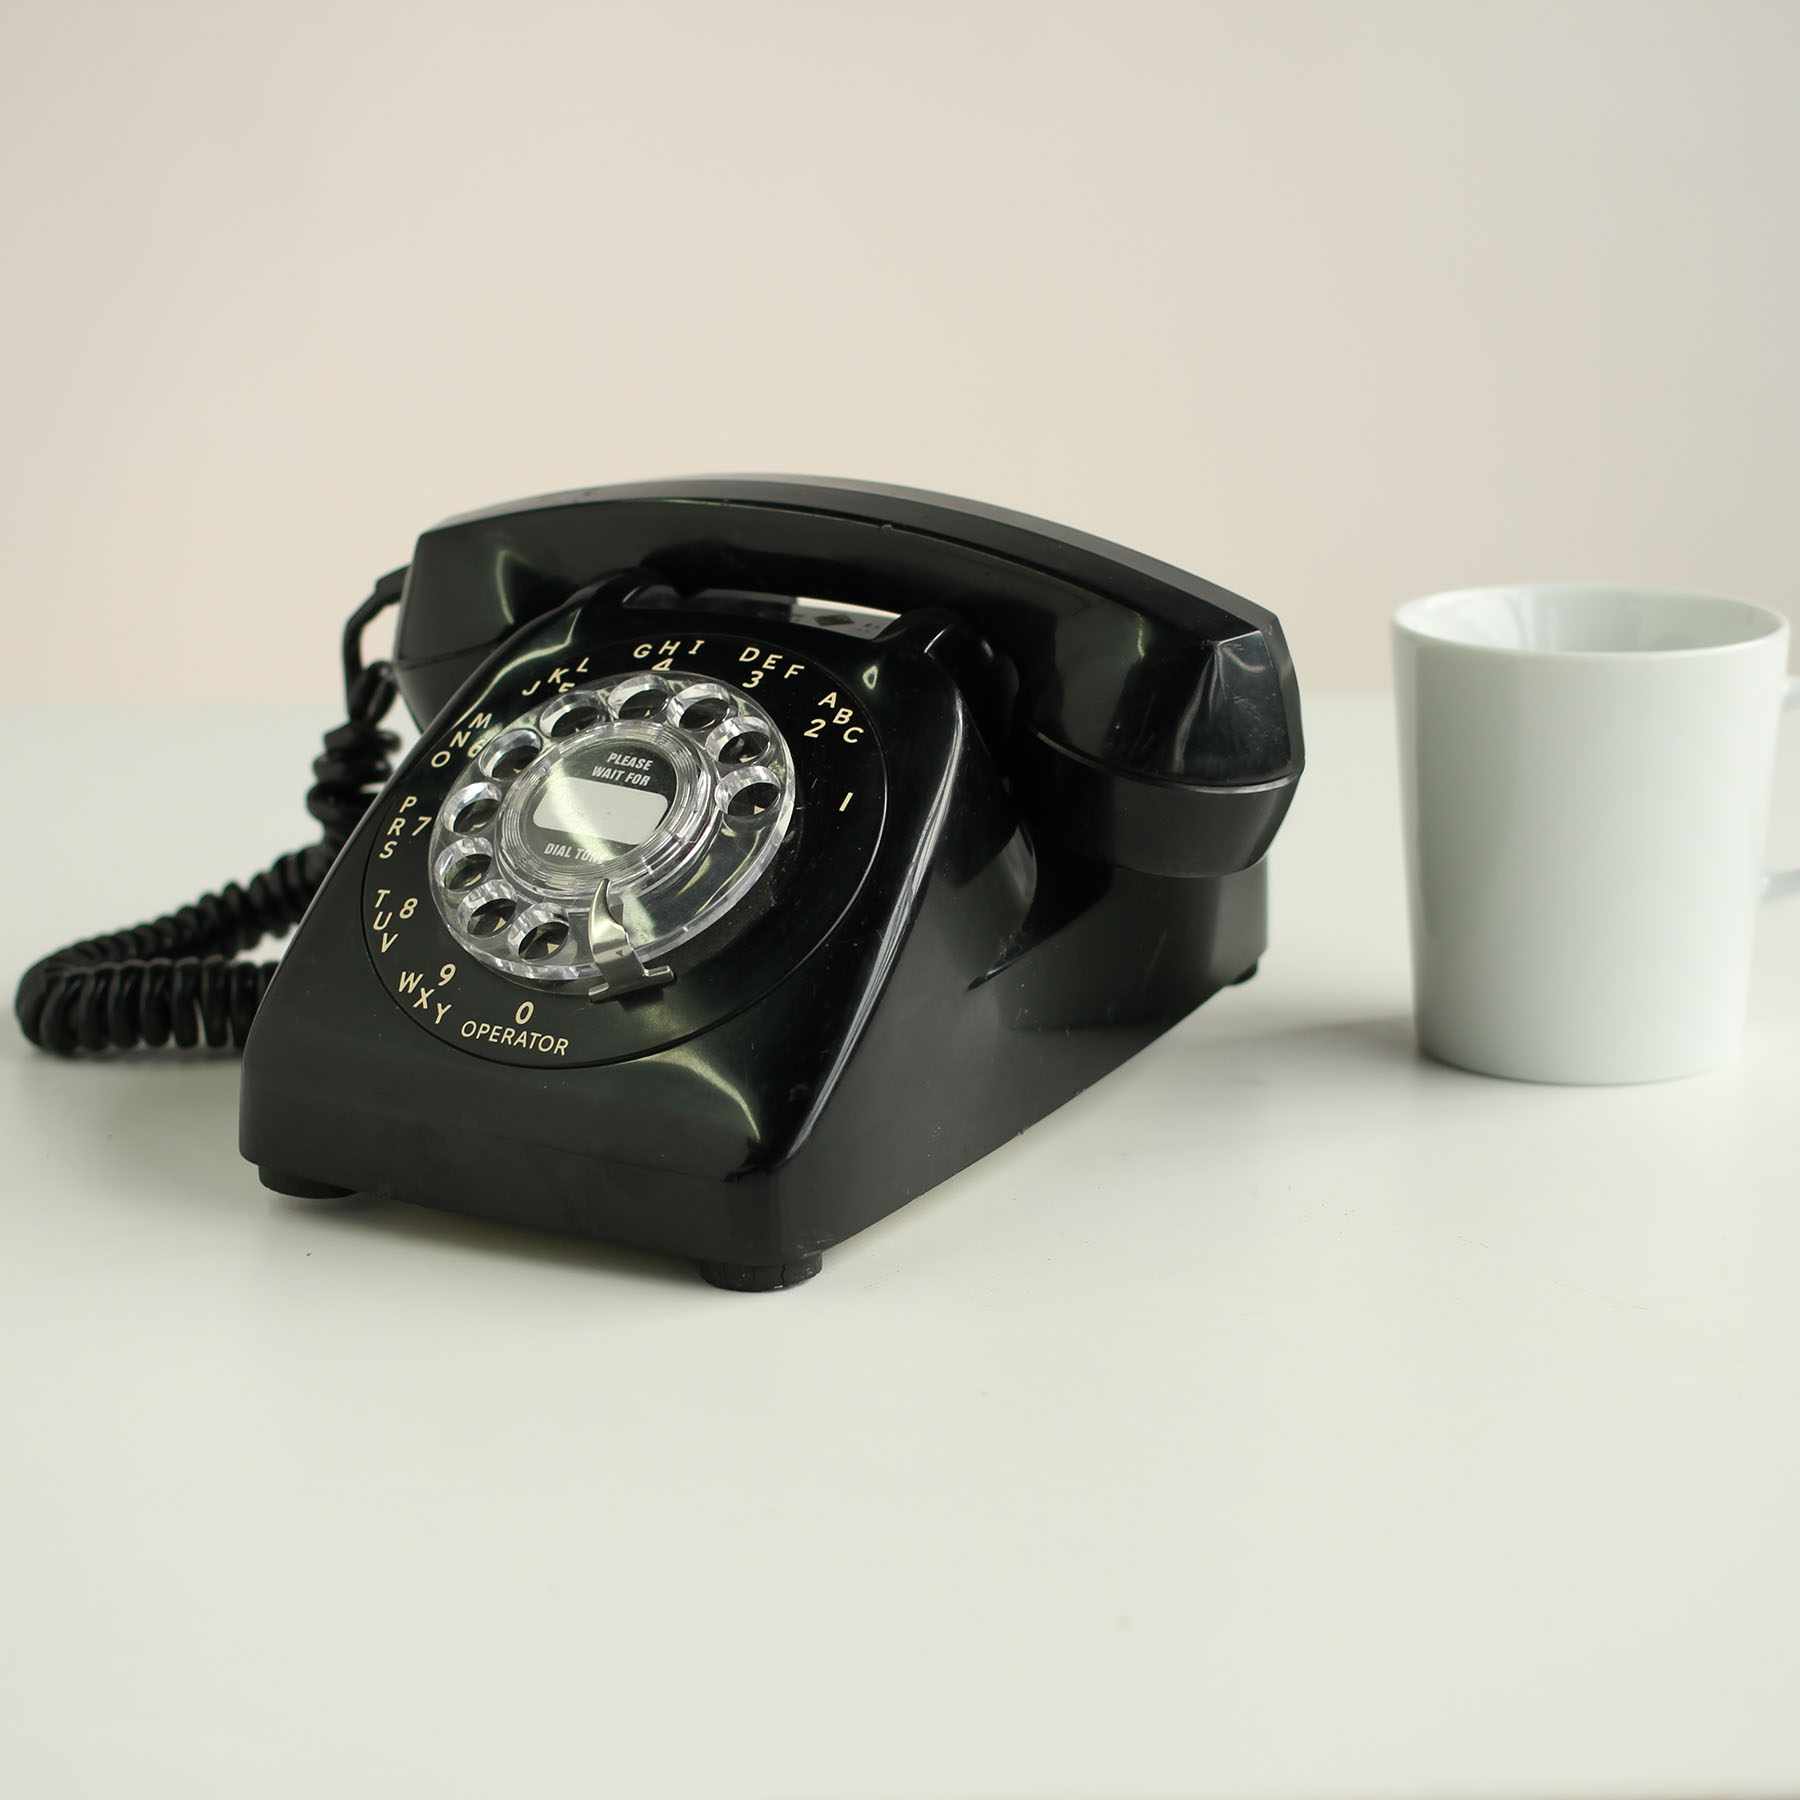 Telephones, pagers, cell phones